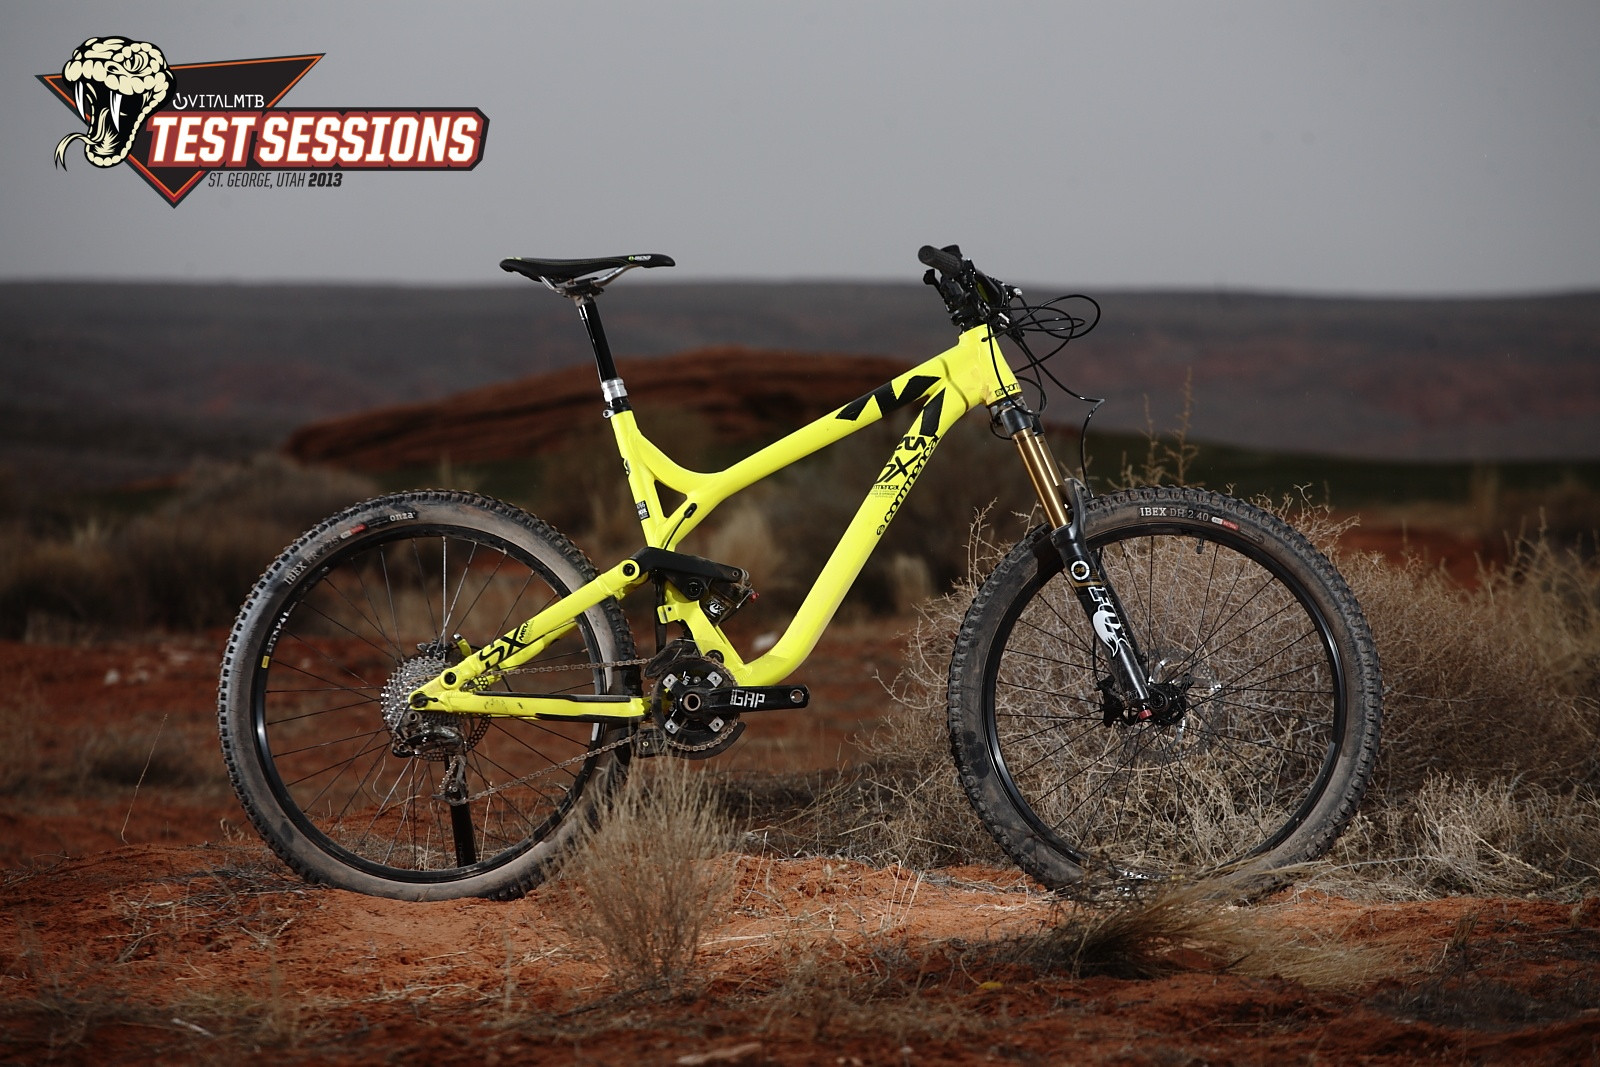 2013 Commencal Meta SX 1 - 2013 Commencal Meta SX 1 - Mountain Biking Pictures - Vital MTB